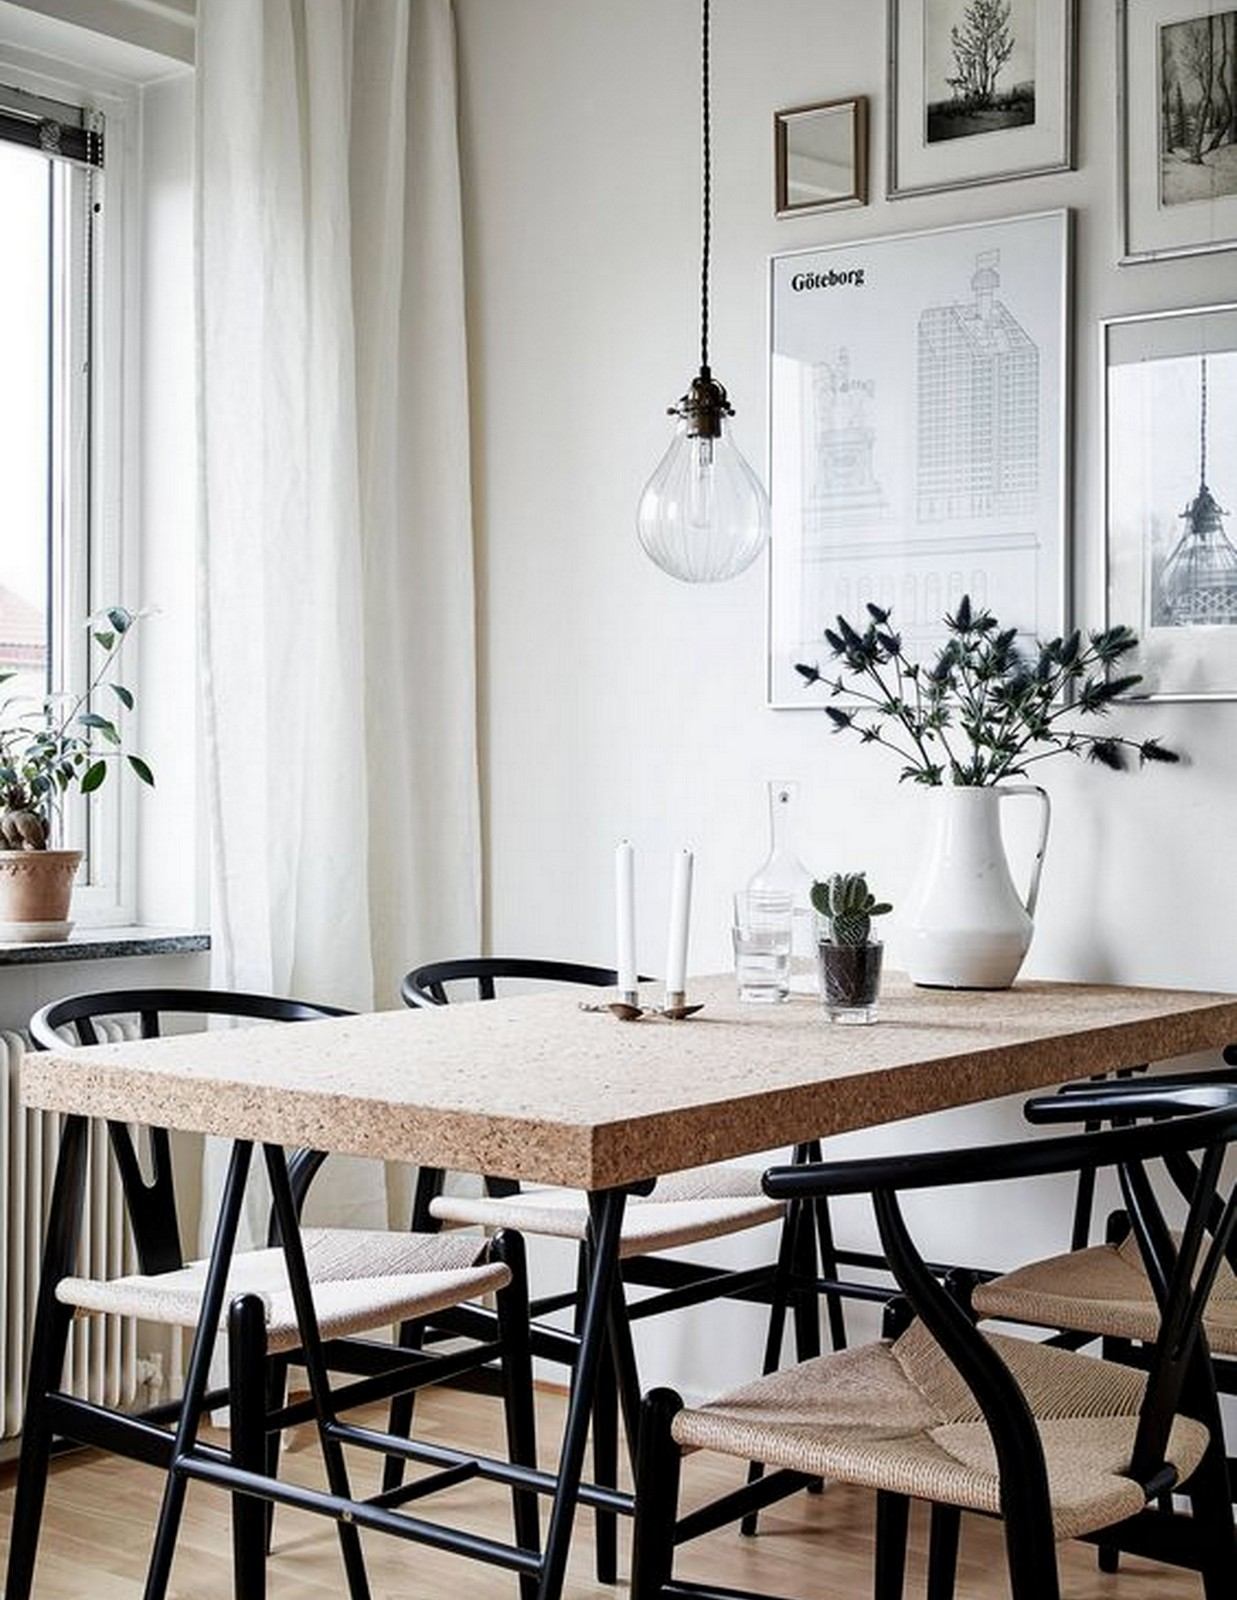 Monochrome Dining